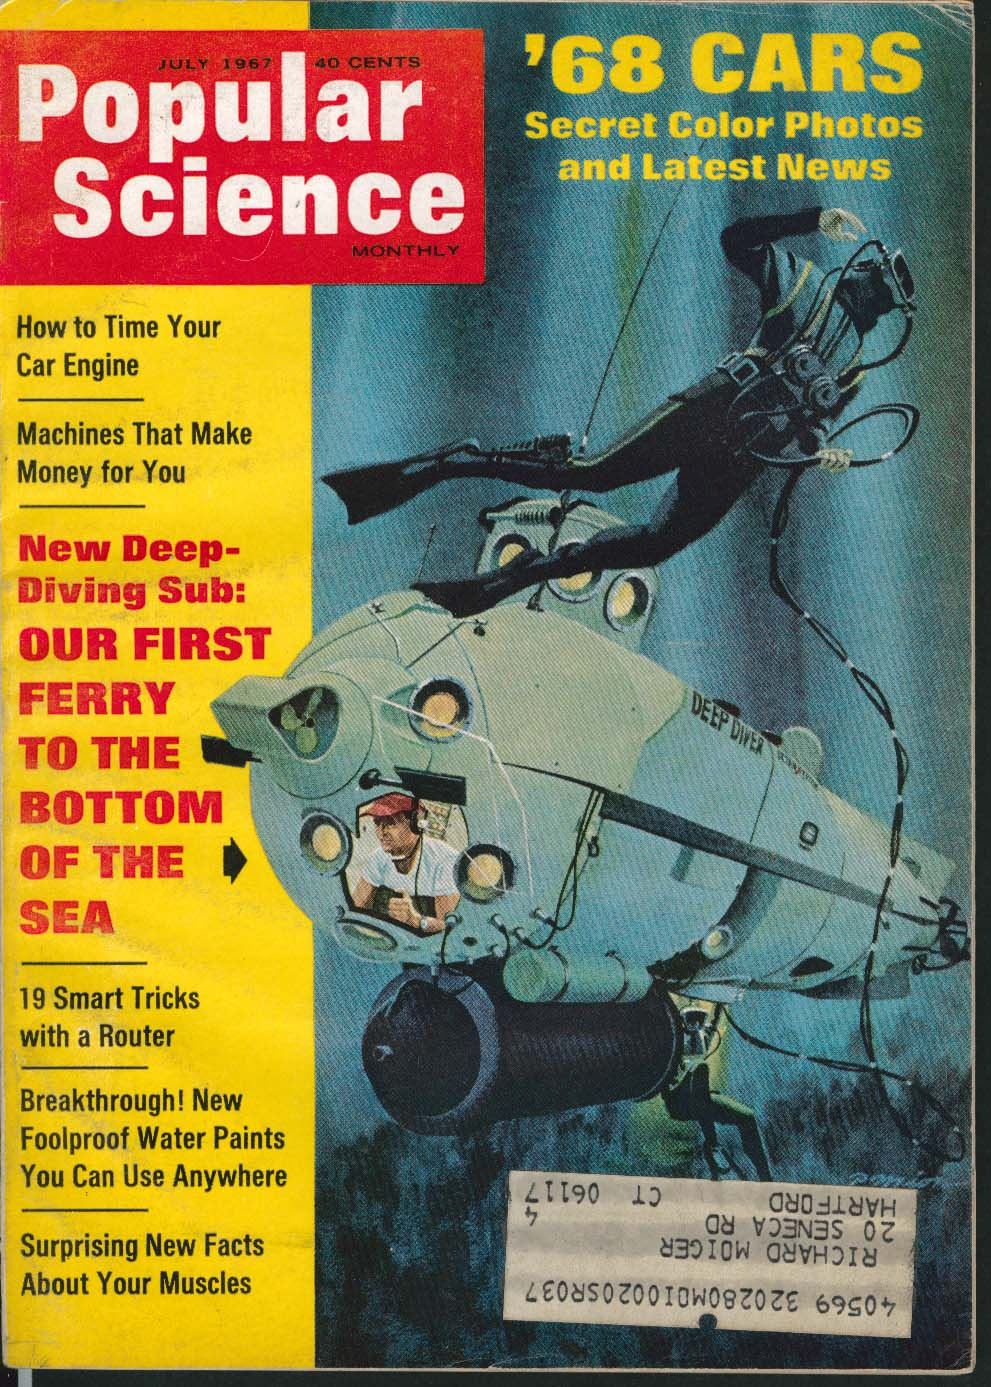 Image for POPULAR SCIENCE Car Engine Timing Bottom of the Sea Ferry ++ 7 1967